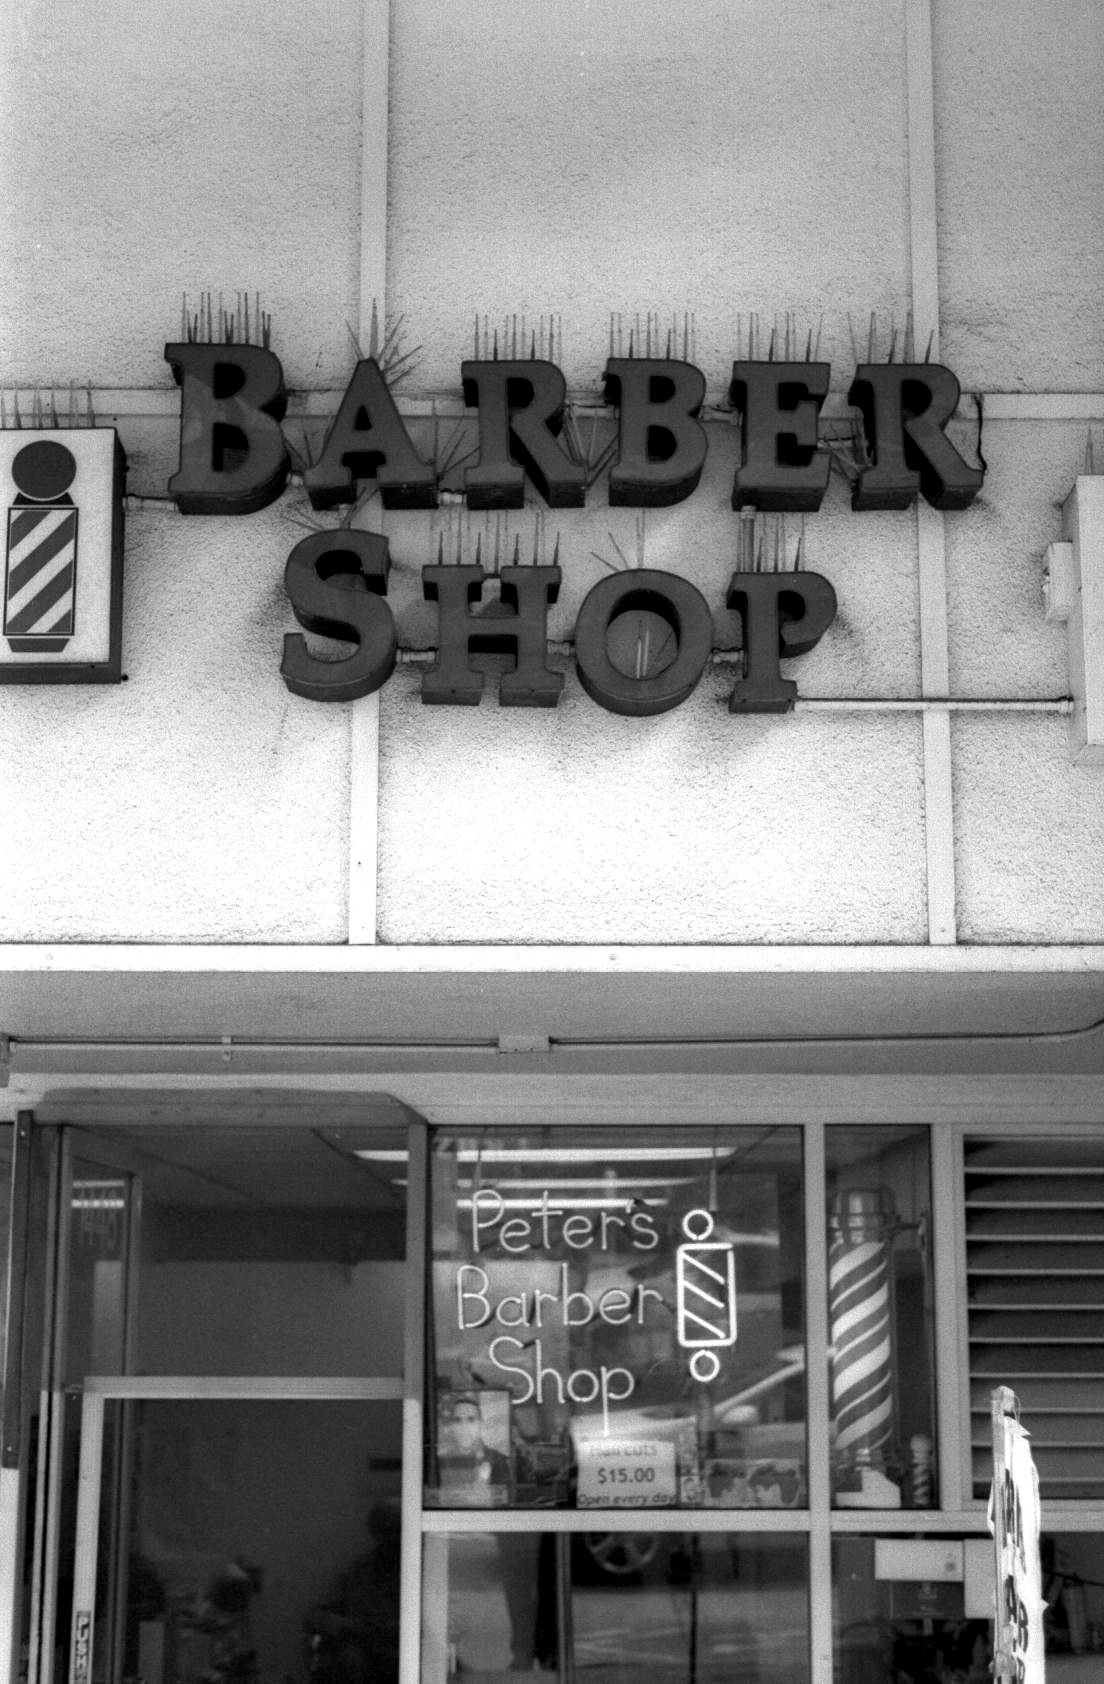 Harbel Photography, The Others - Peters Barber Shop. Peter's barber shop. Vera Fotografia